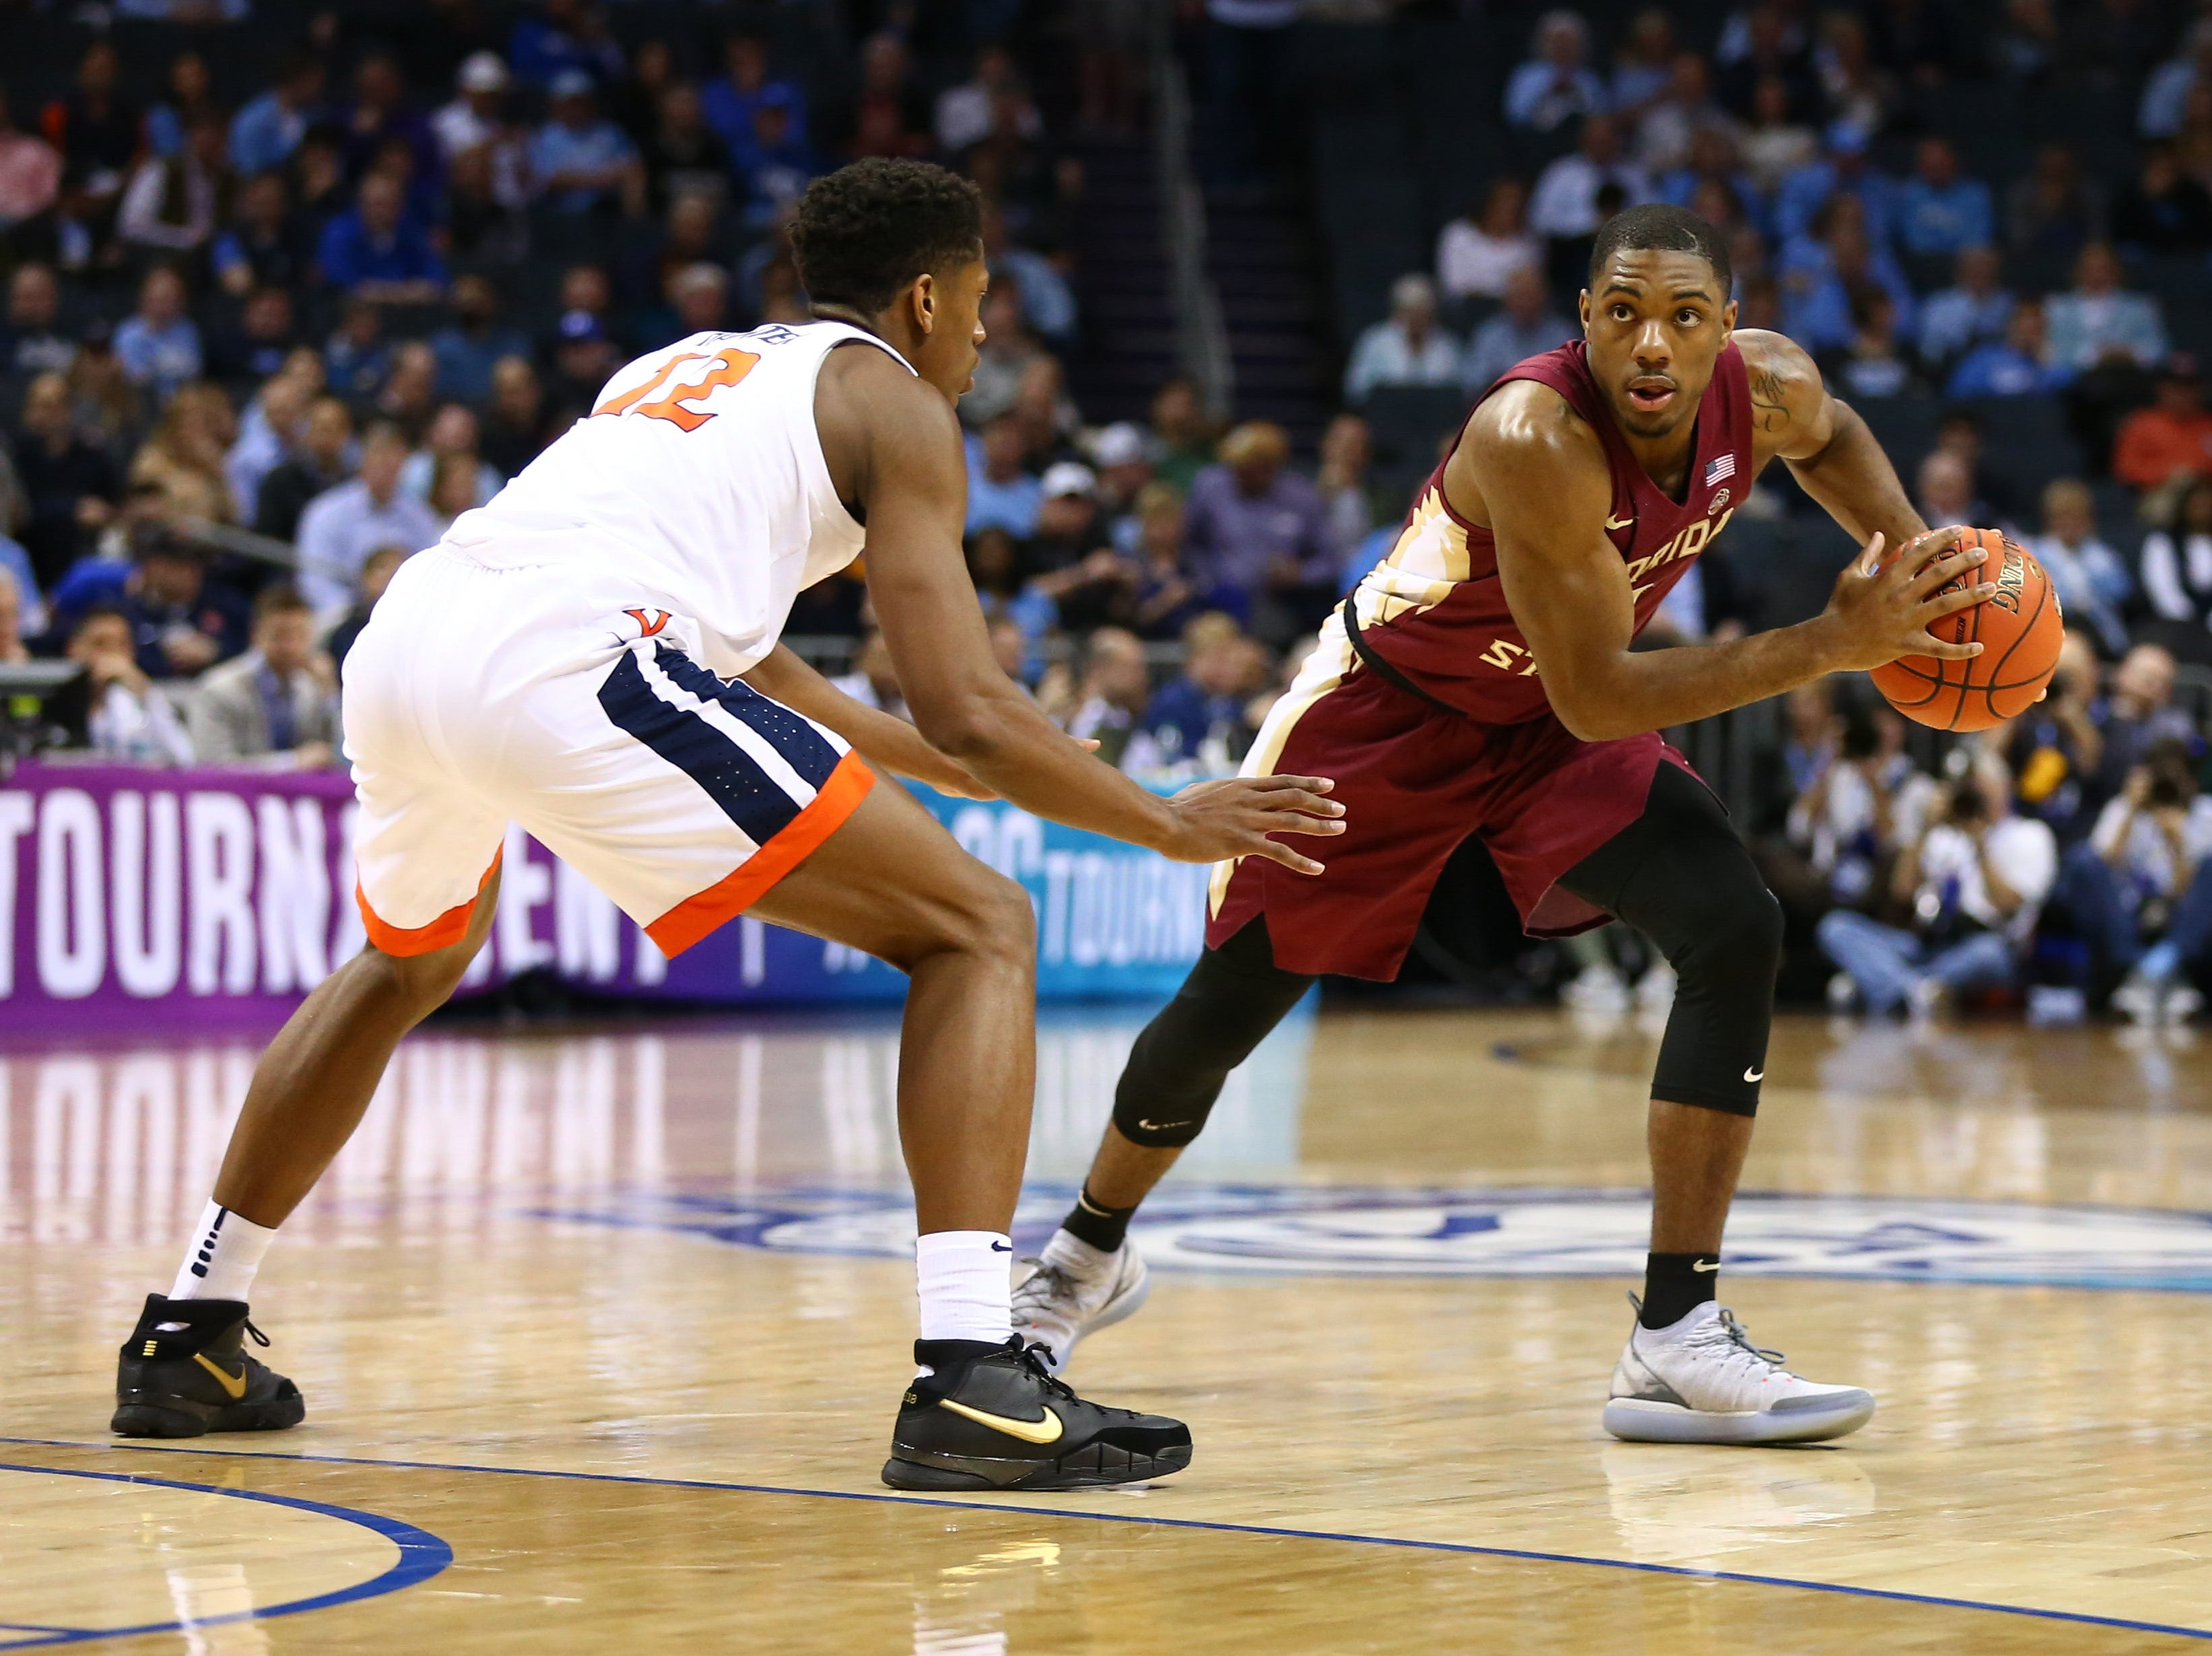 Mar 15, 2019; Charlotte, NC, USA; Florida State Seminoles guard Trent Forrest (3) sets up a play against Virginia Cavaliers guard De'Andre Hunter (12) in the first half in the ACC conference tournament at Spectrum Center. Mandatory Credit: Jeremy Brevard-USA TODAY Sports